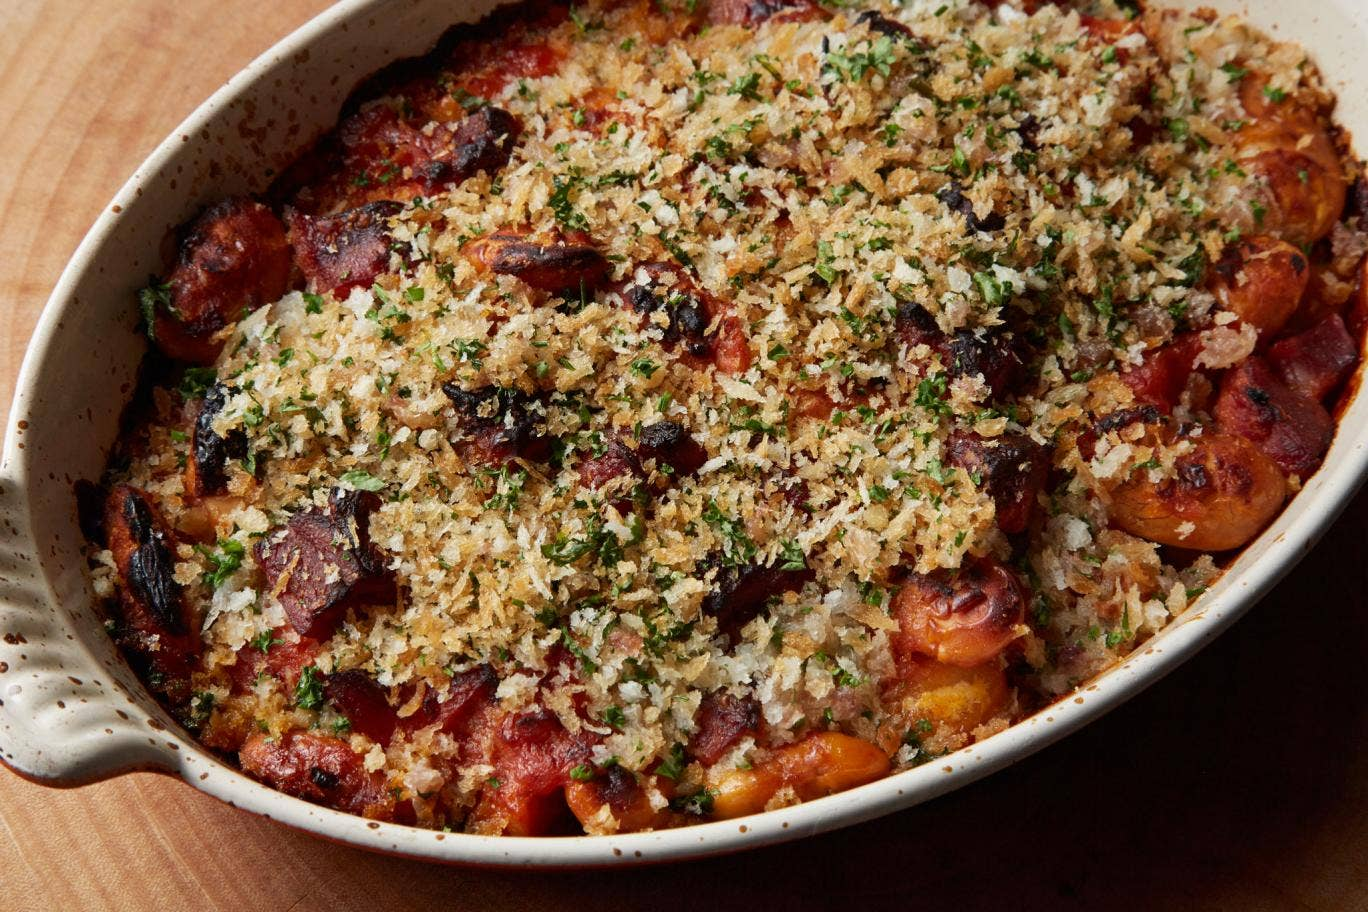 Baked butter beans with smoked ham hock